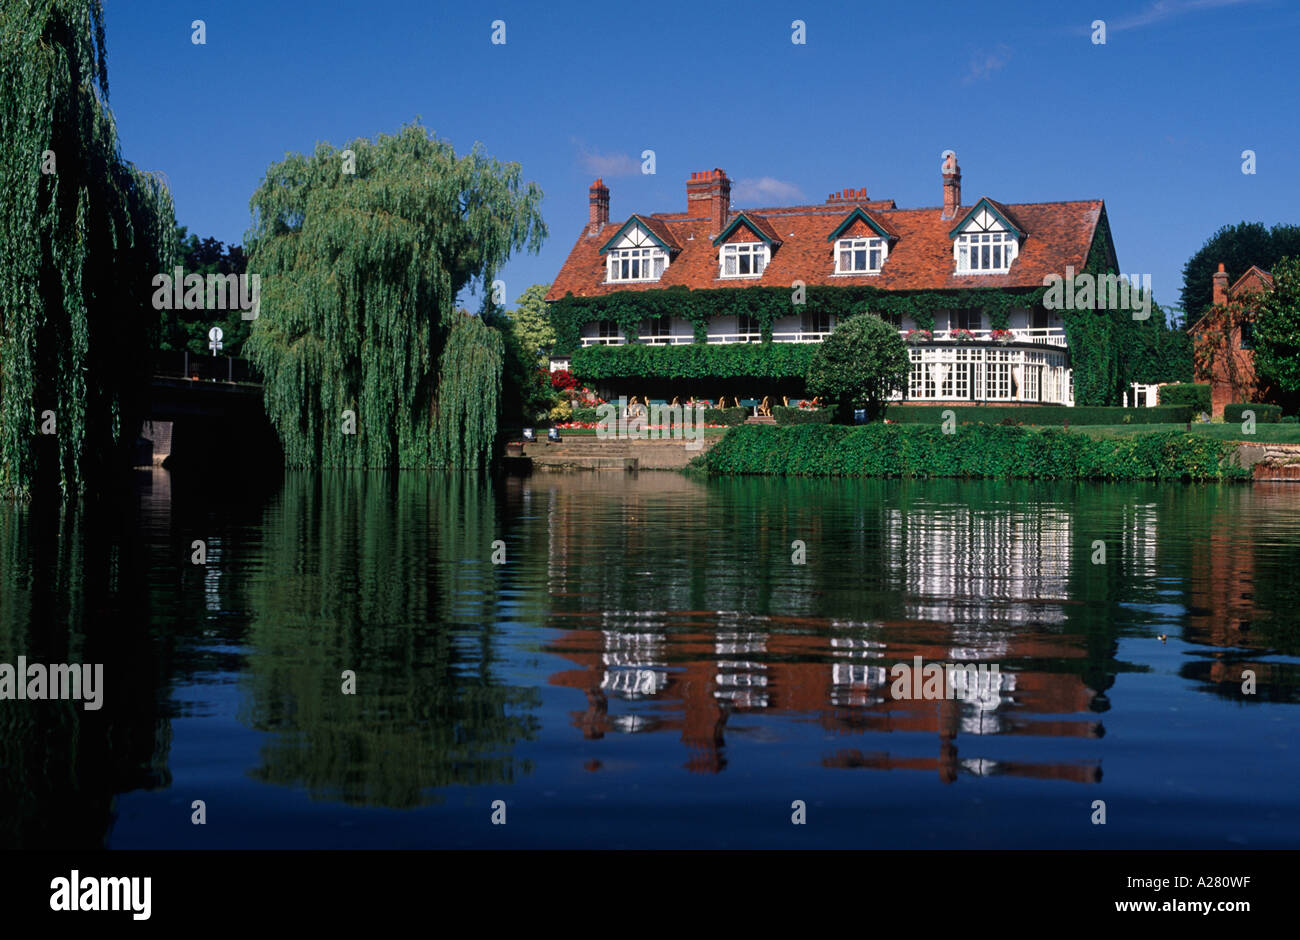 The french horn luxury hotel and restaurant overlooking backwater of river thames at sonning berkshire